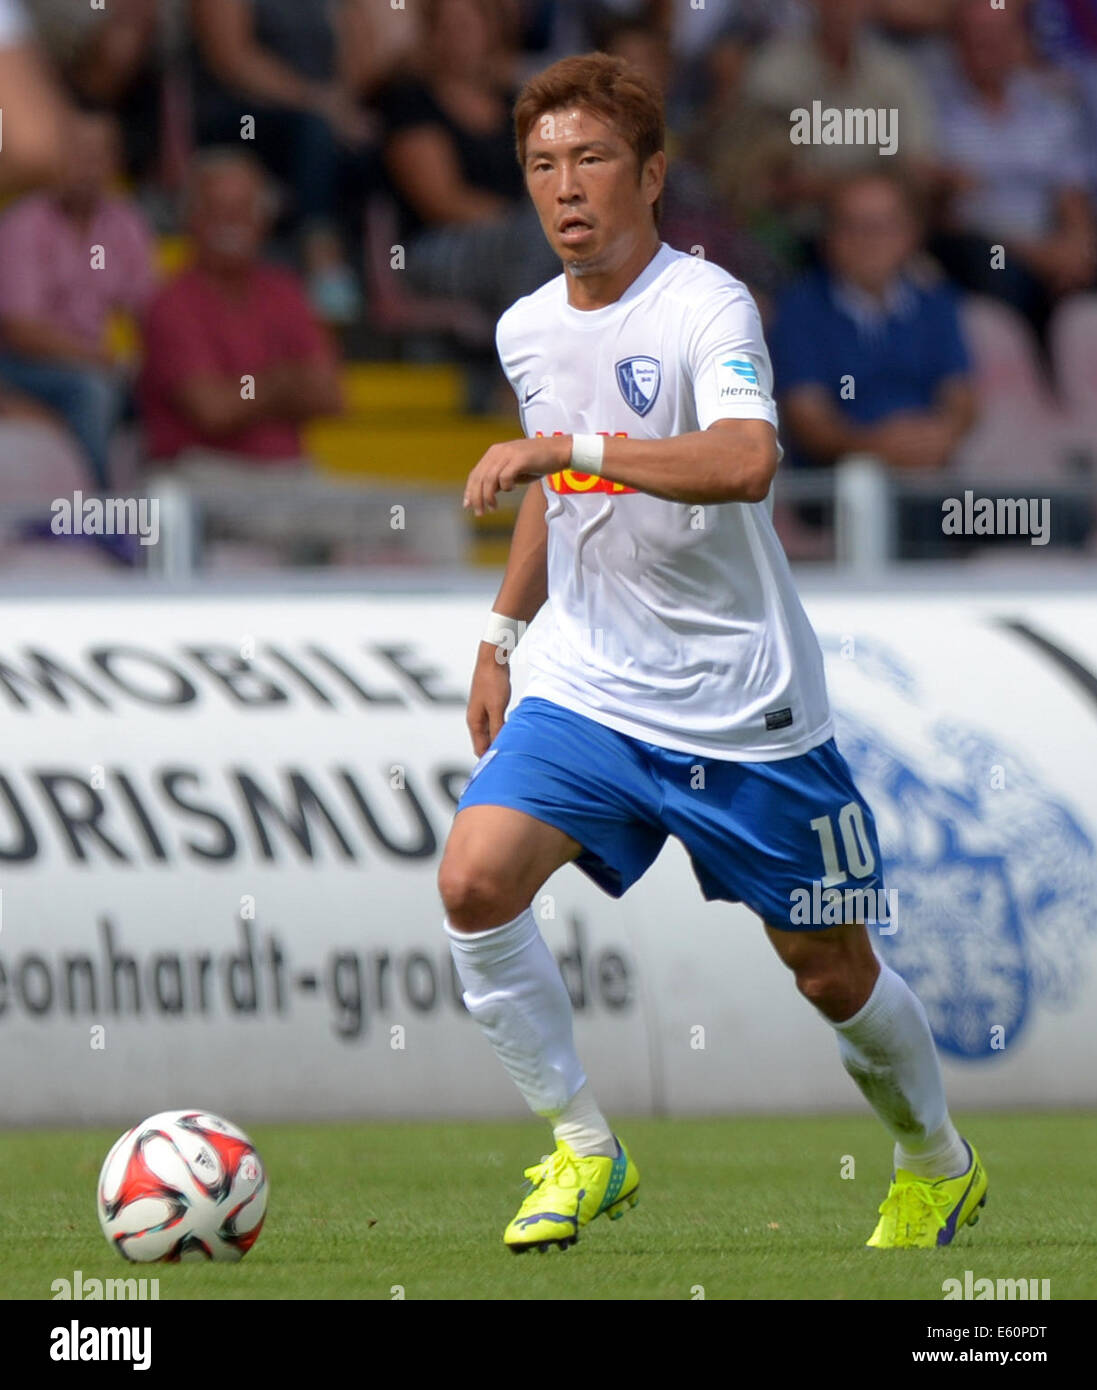 Aue, Germany. 09th Aug, 2014. Bochum's Yusuke Tasaka vies for the ball during the German second league soccer - Stock Image